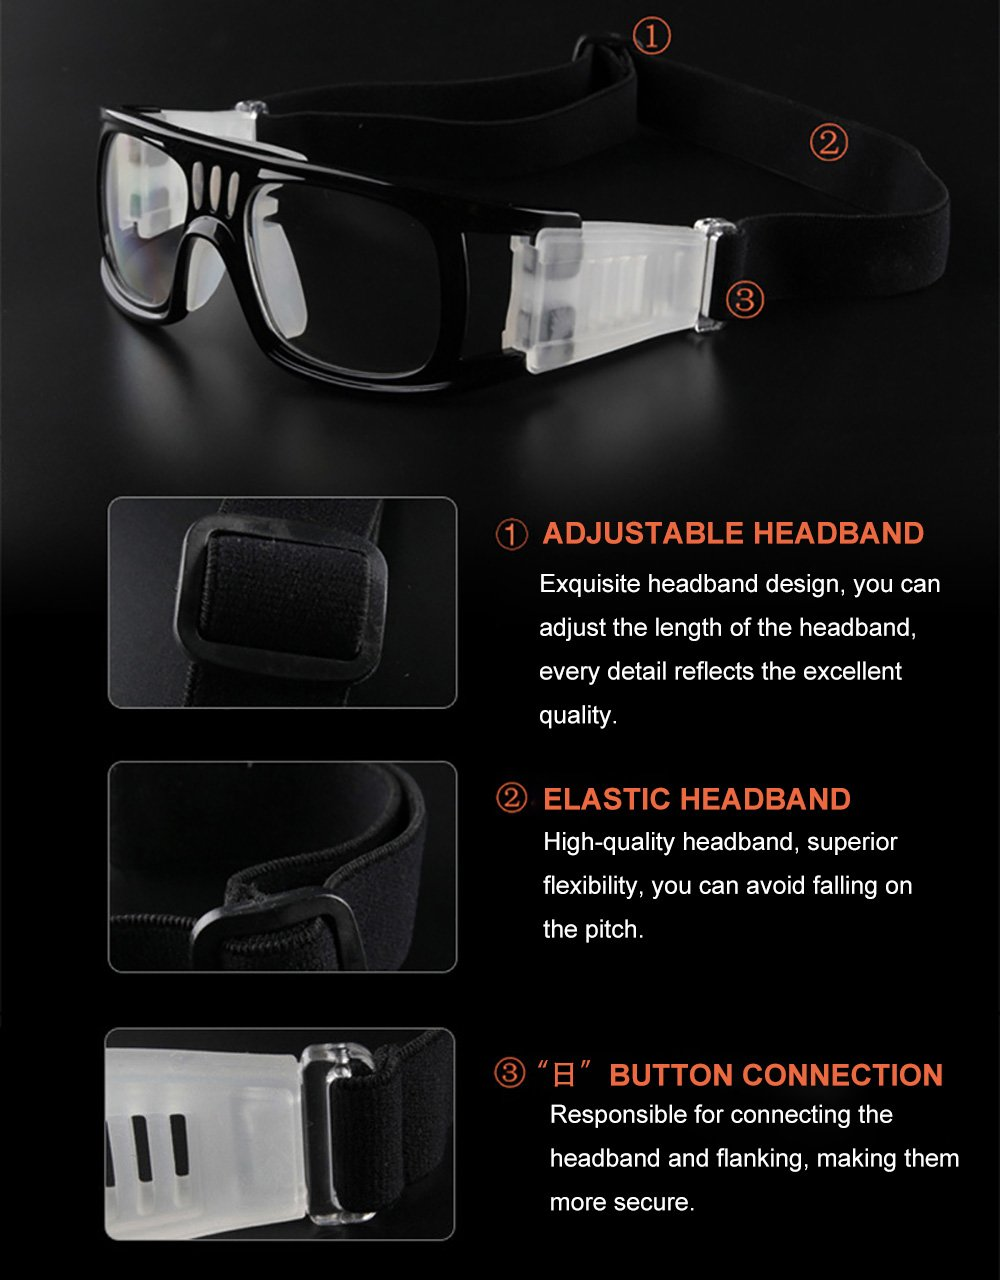 8f2936a4c8b Sports Goggles Anti-Fog Protective Safety Goggles Basketball Glasses for  Men with Adjustable Strap for Basketball Football Volleyball Hockey Rugby …